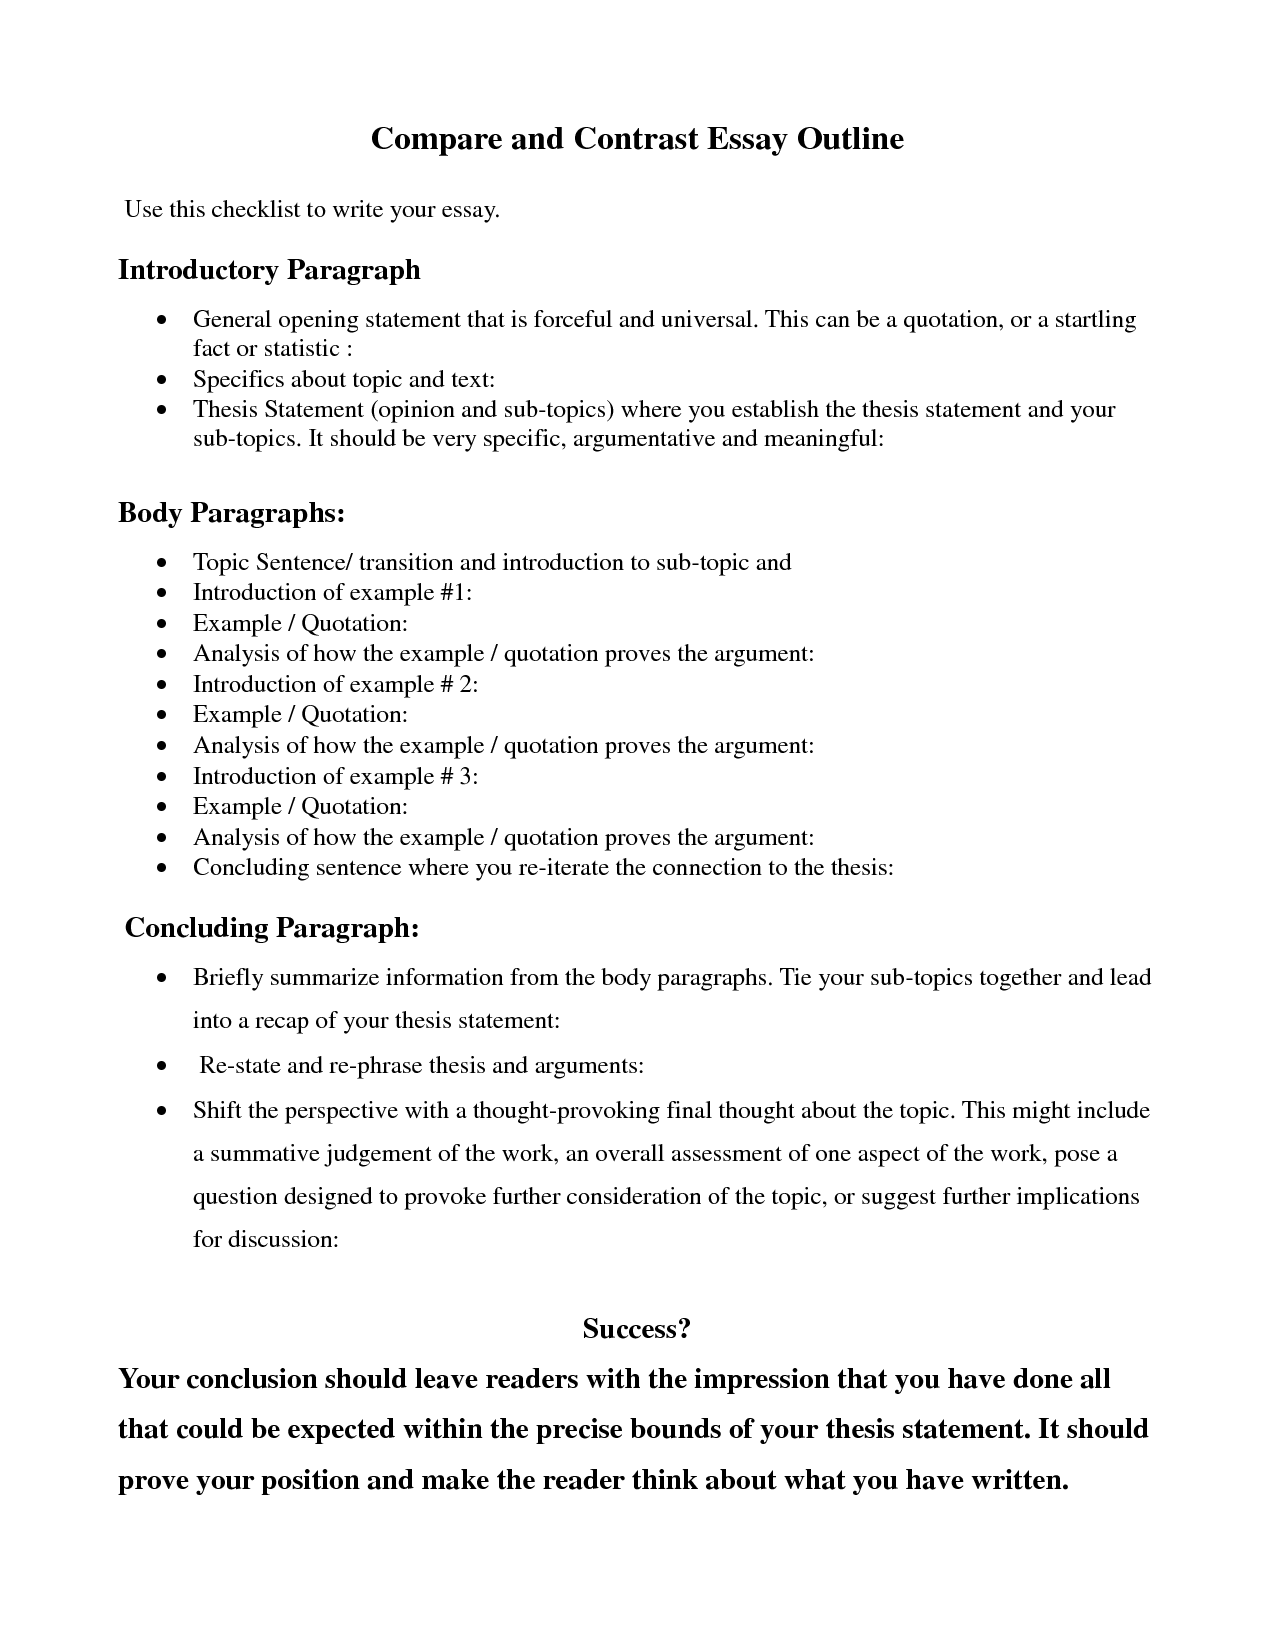 001 Compare And Contrast Essay Example Frightening Outline 4th Grade Examples Full